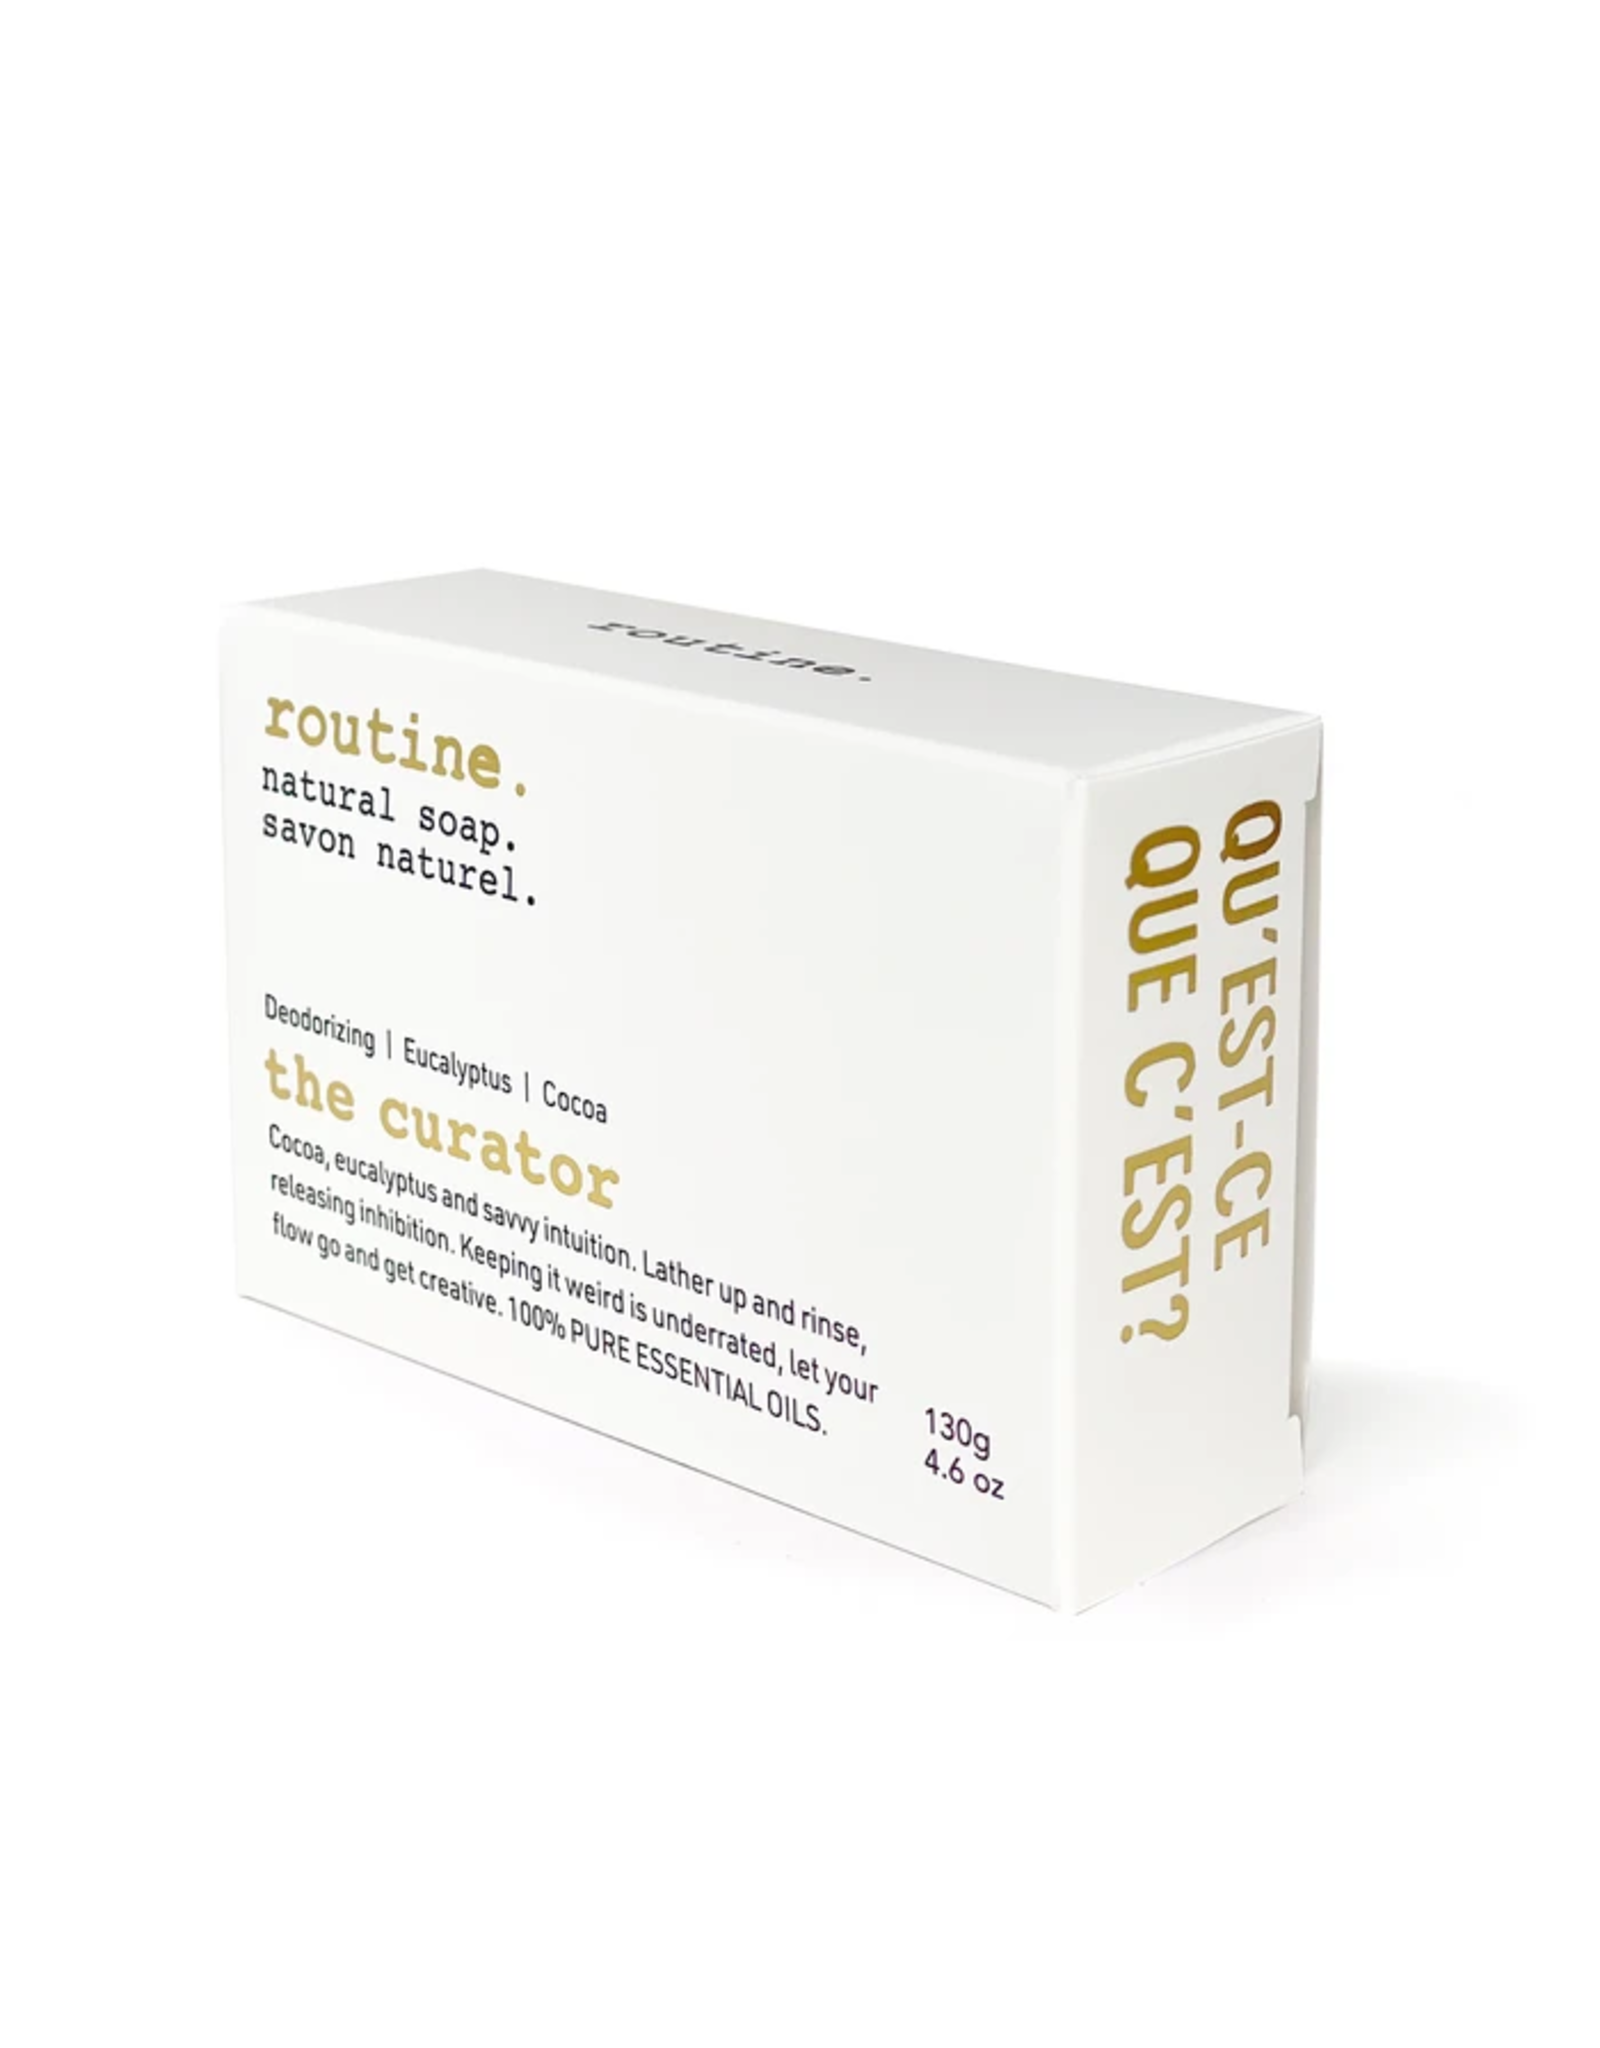 Routine The Curator Natural Bar Soap